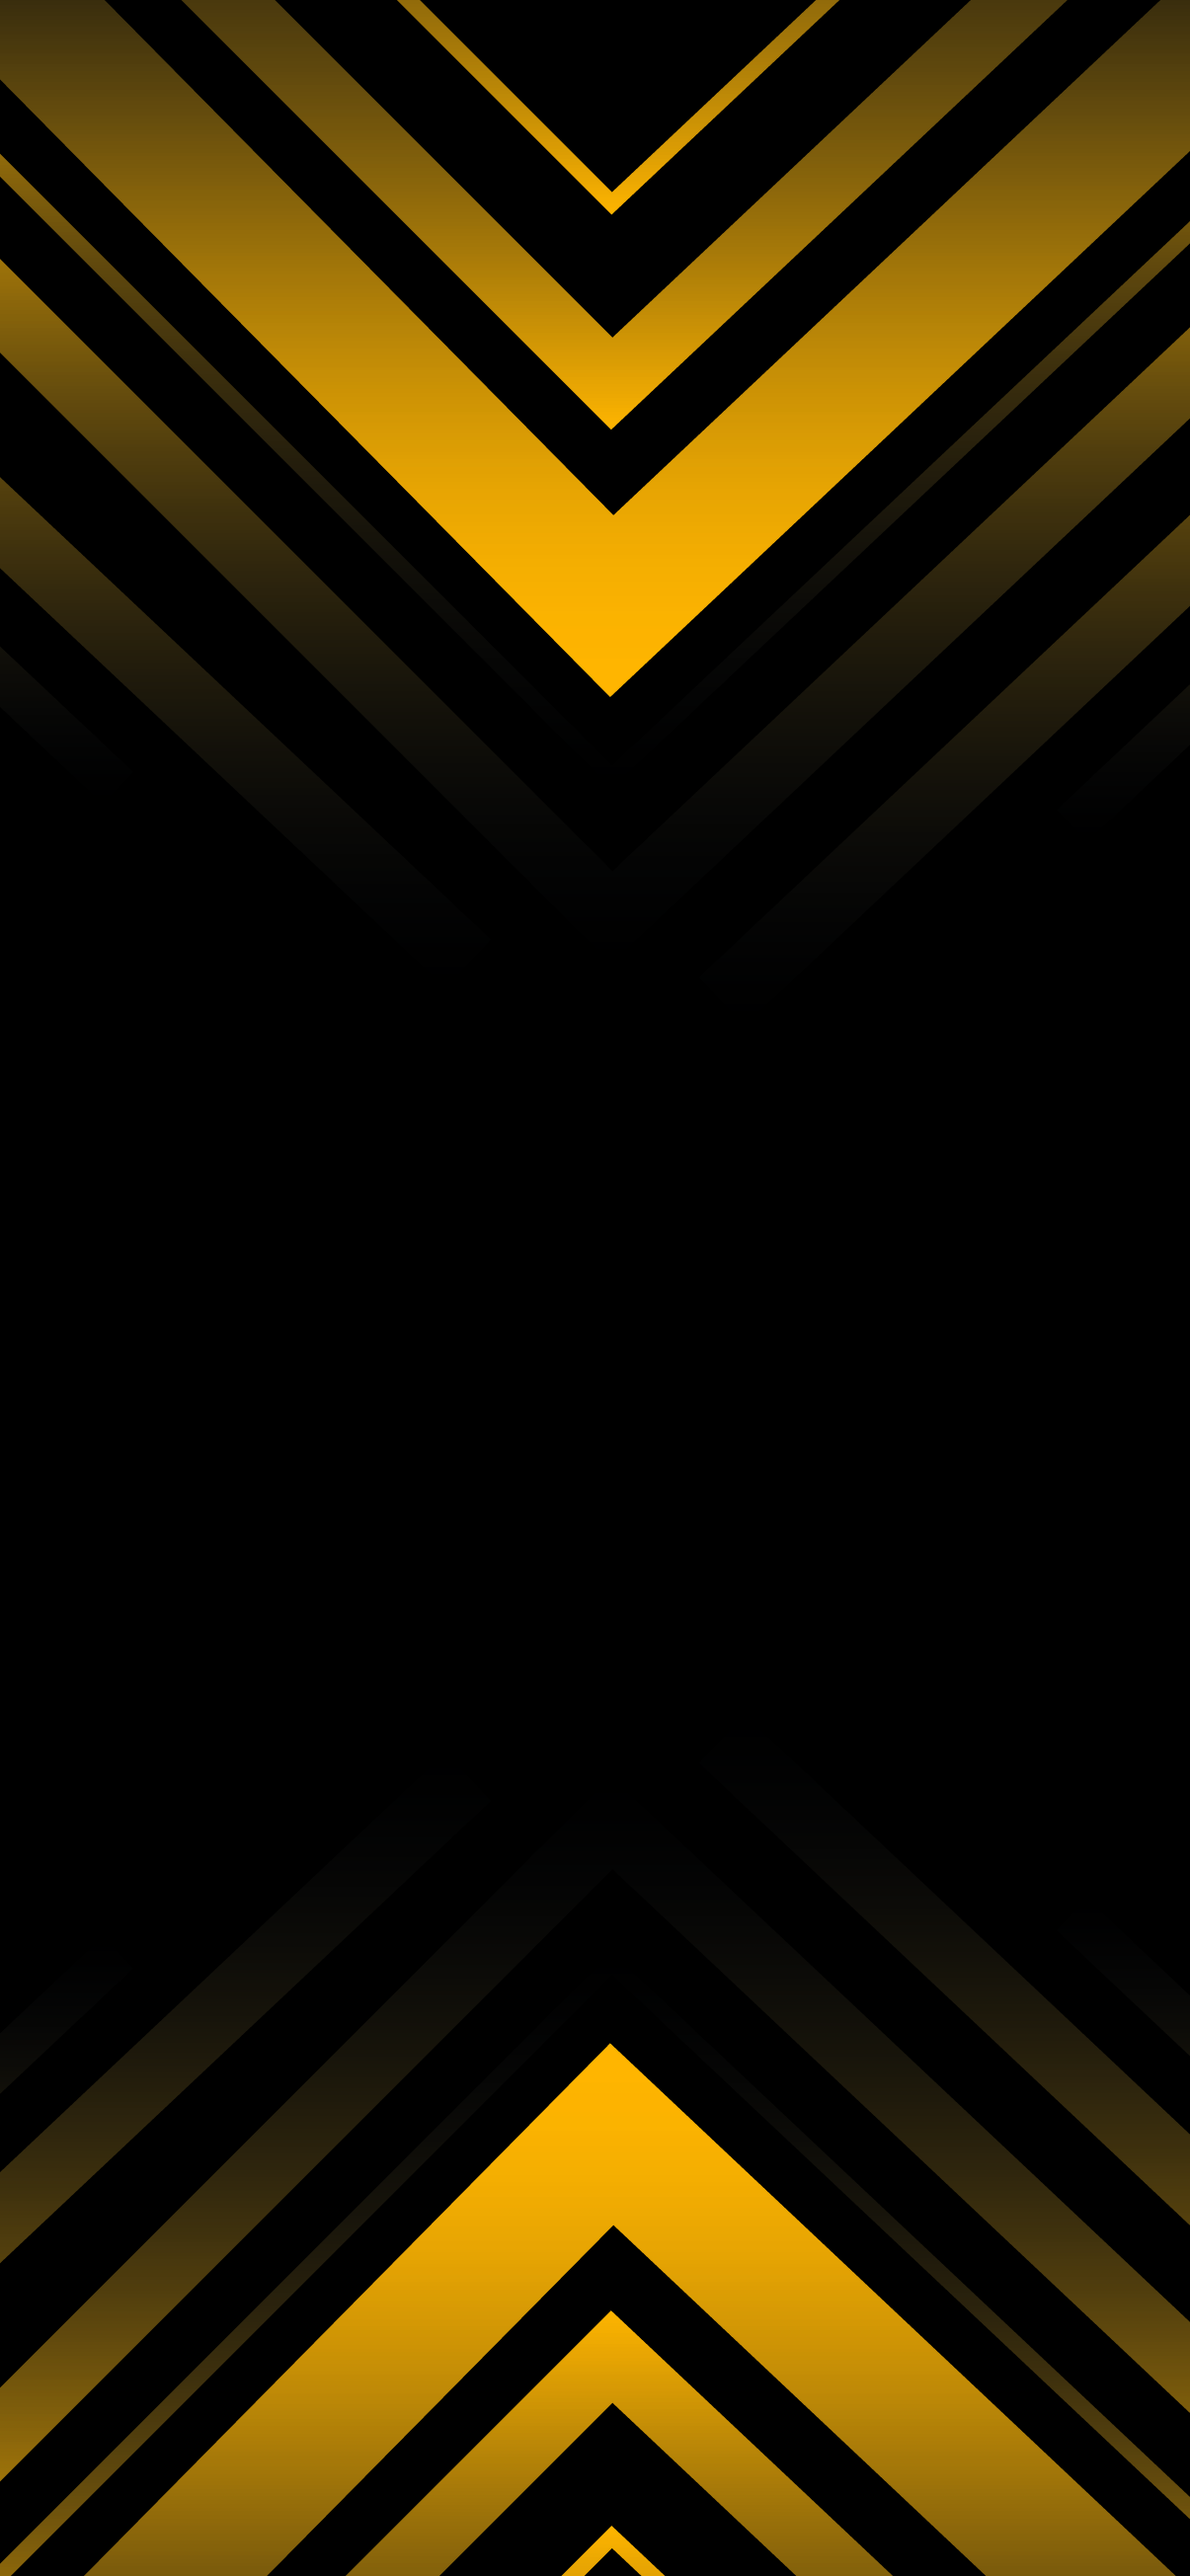 amoled-wallpaper-yellow-stripes